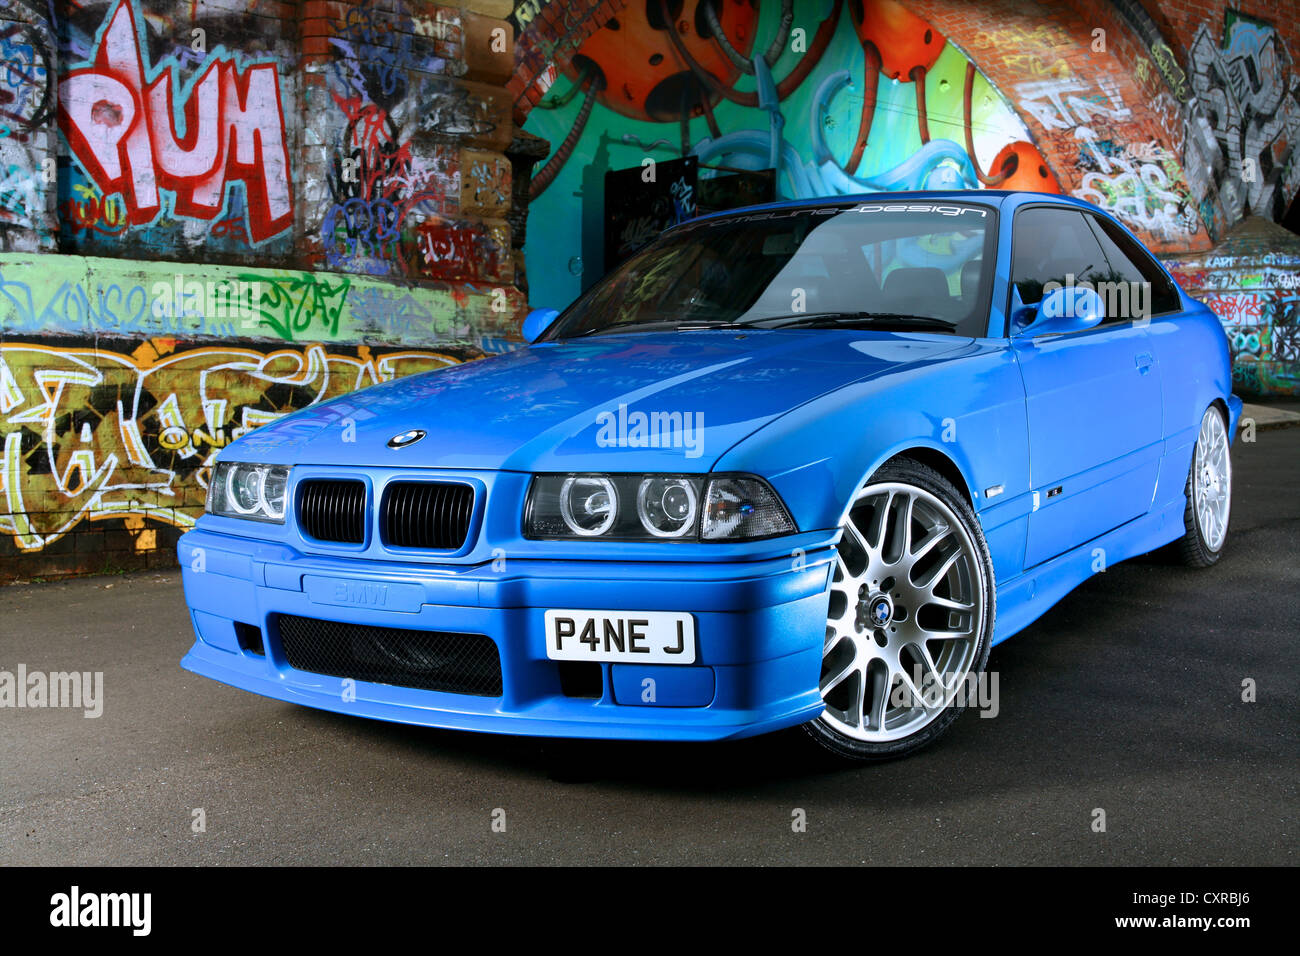 Bmw M3 Parked In Front Of Graffiti Wall Stock Photo Alamy